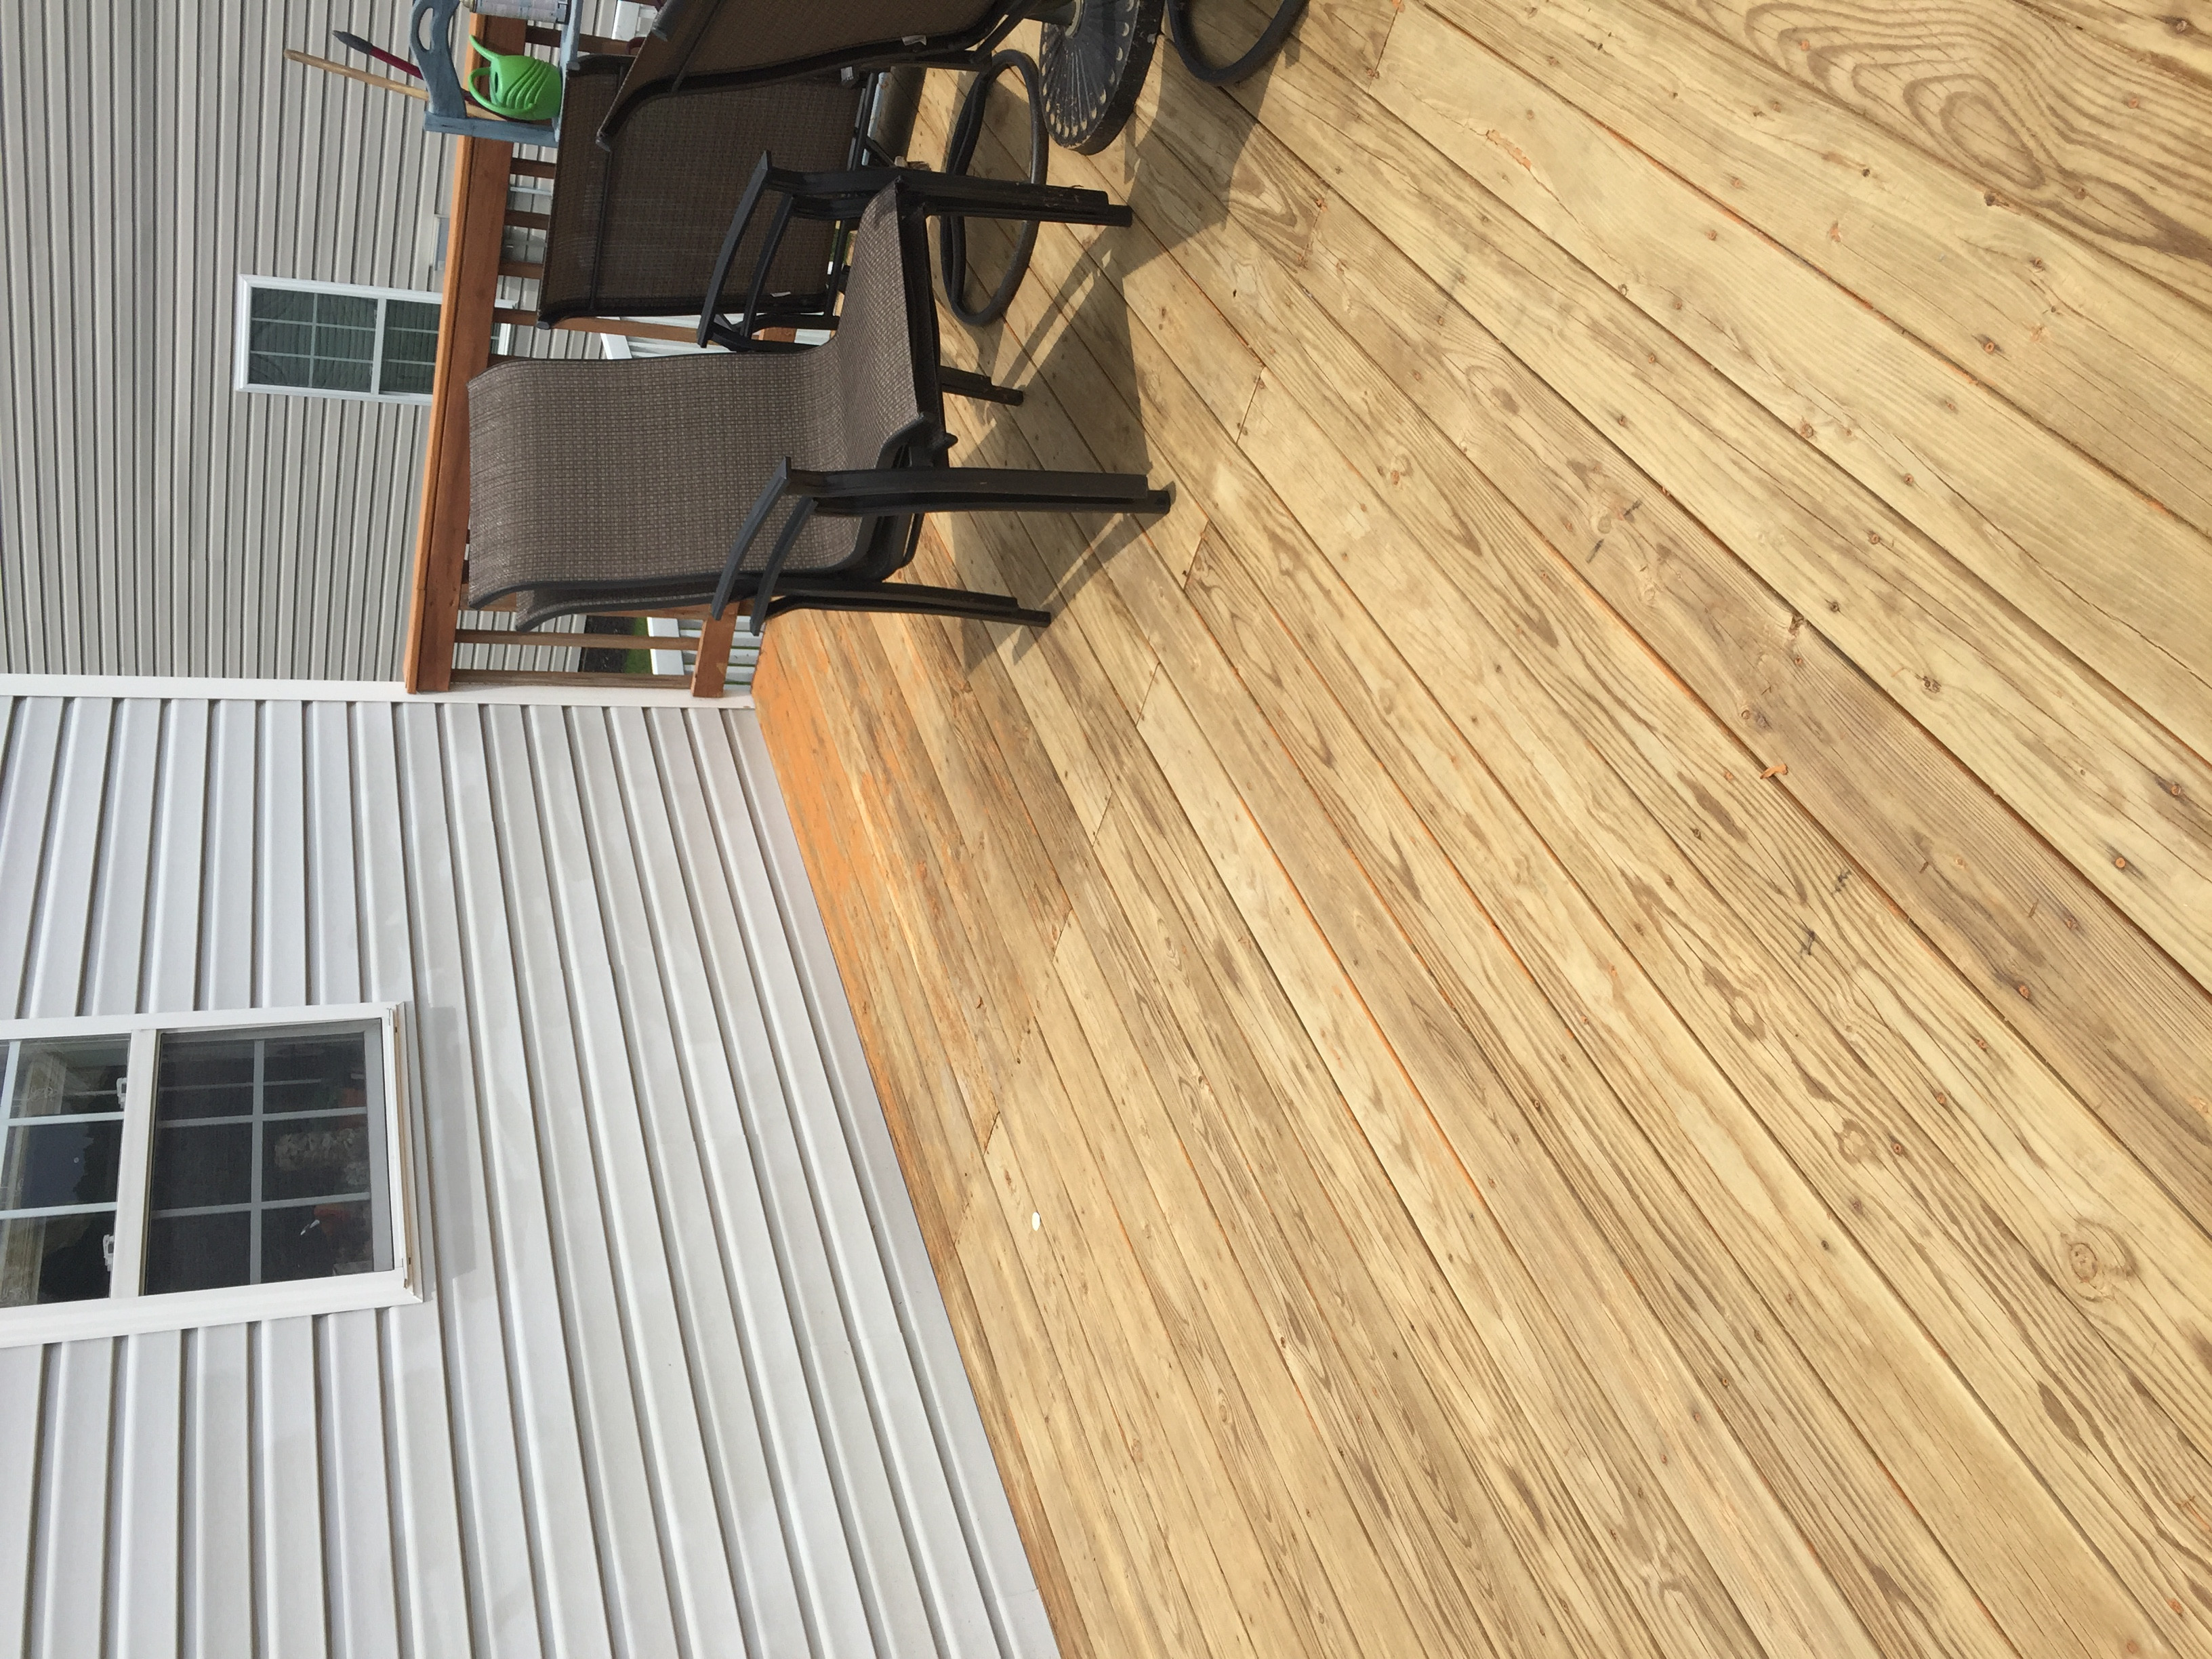 hardwood flooring lawrenceville nj of best stain for an old deck best deck stain reviews ratings within 8535eaf3 4745 4fd7 9329 389844374e0e